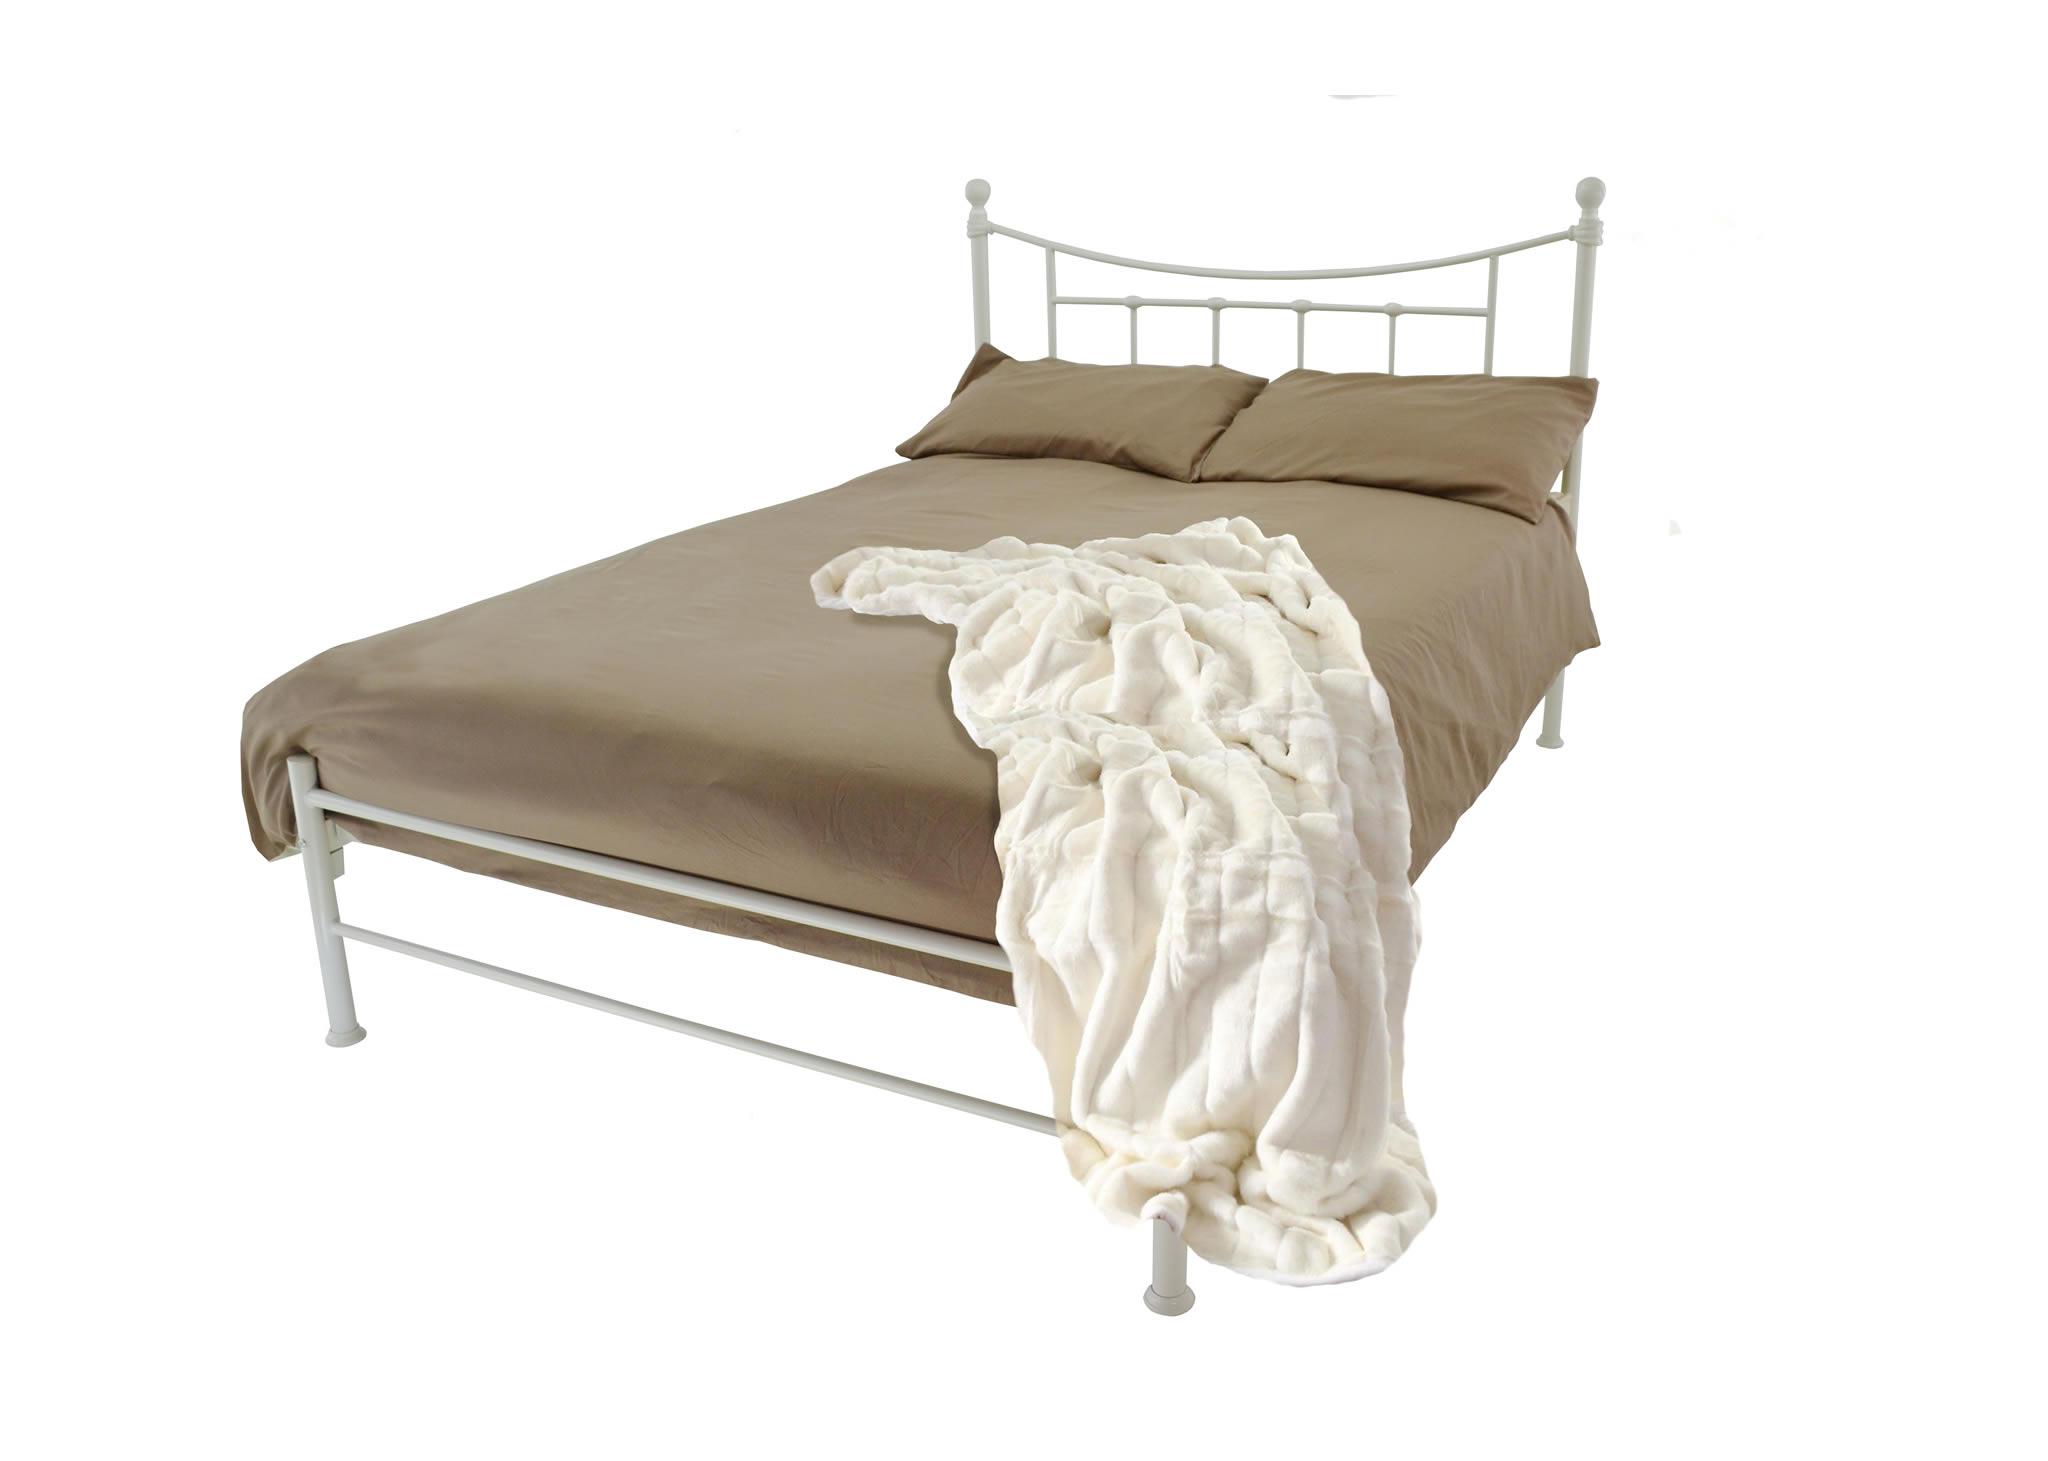 BRIMESHI_Wholesale_Beds_Suppliers